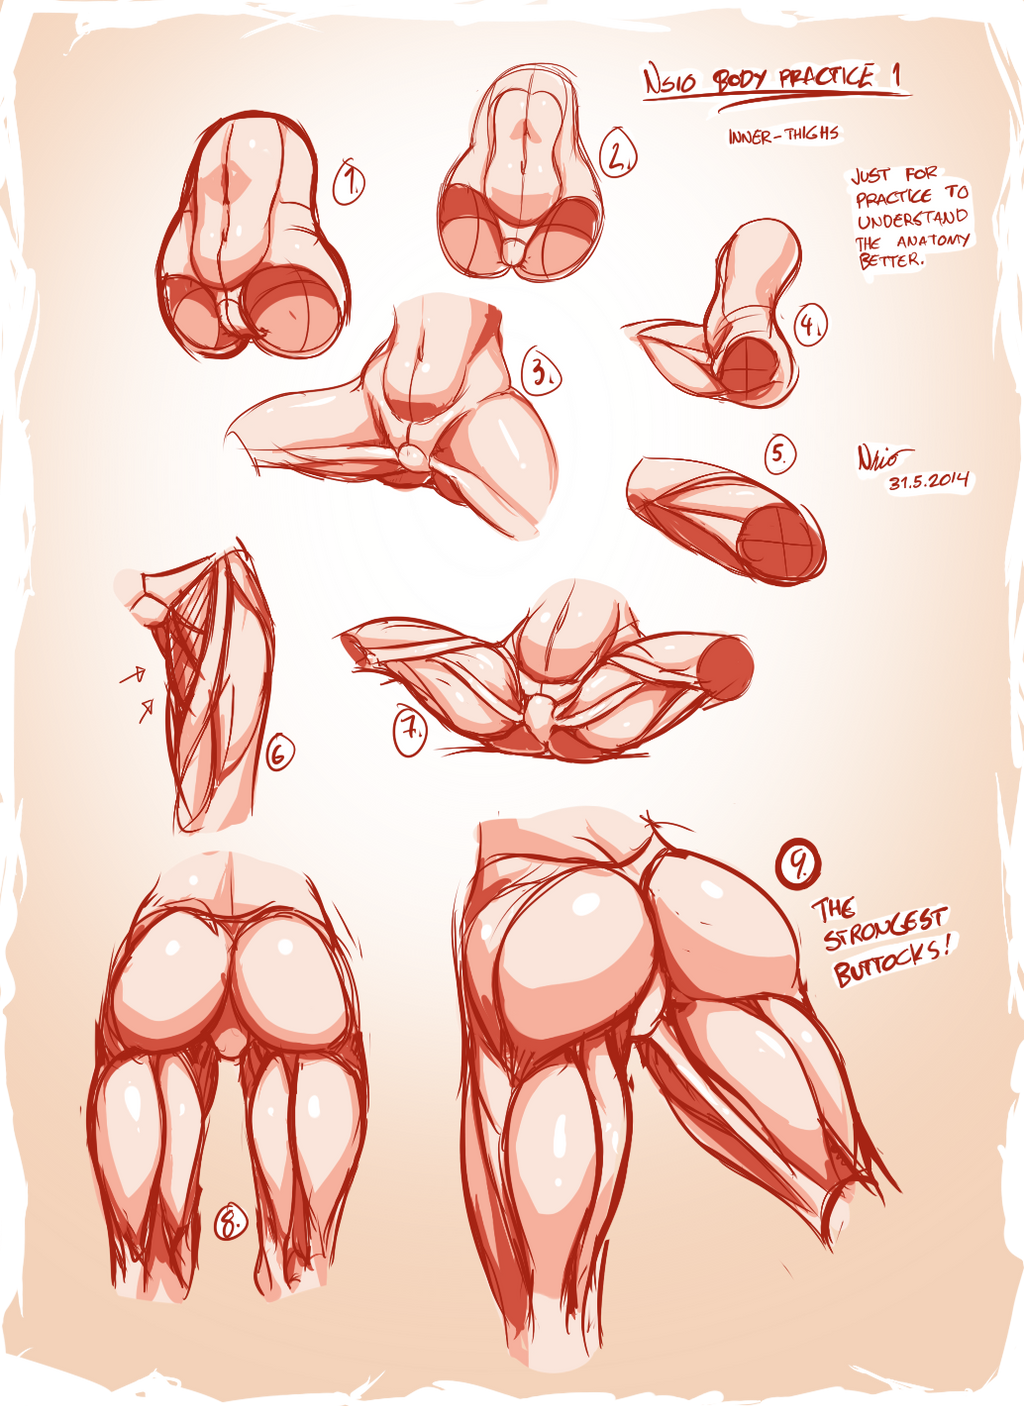 Nsio Body Practice1 Muscles Of The Inner Thigh By Nsio On Deviantart